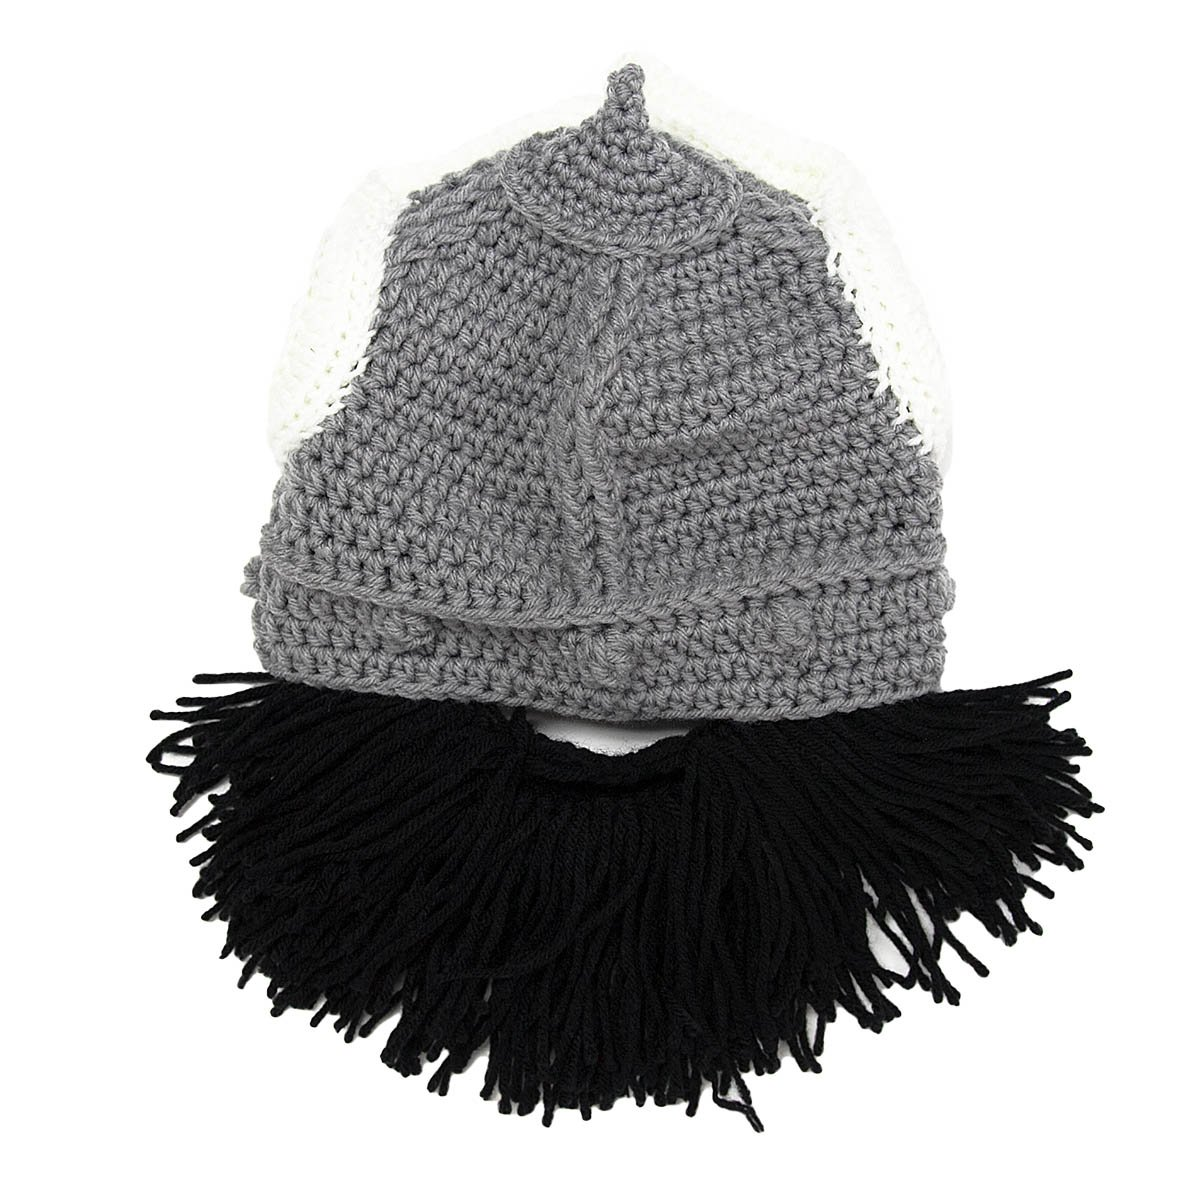 0f3f1dc5c37b85 Beard Head - The Original Barbarian Thor Knit Beard Hat - Cool ...